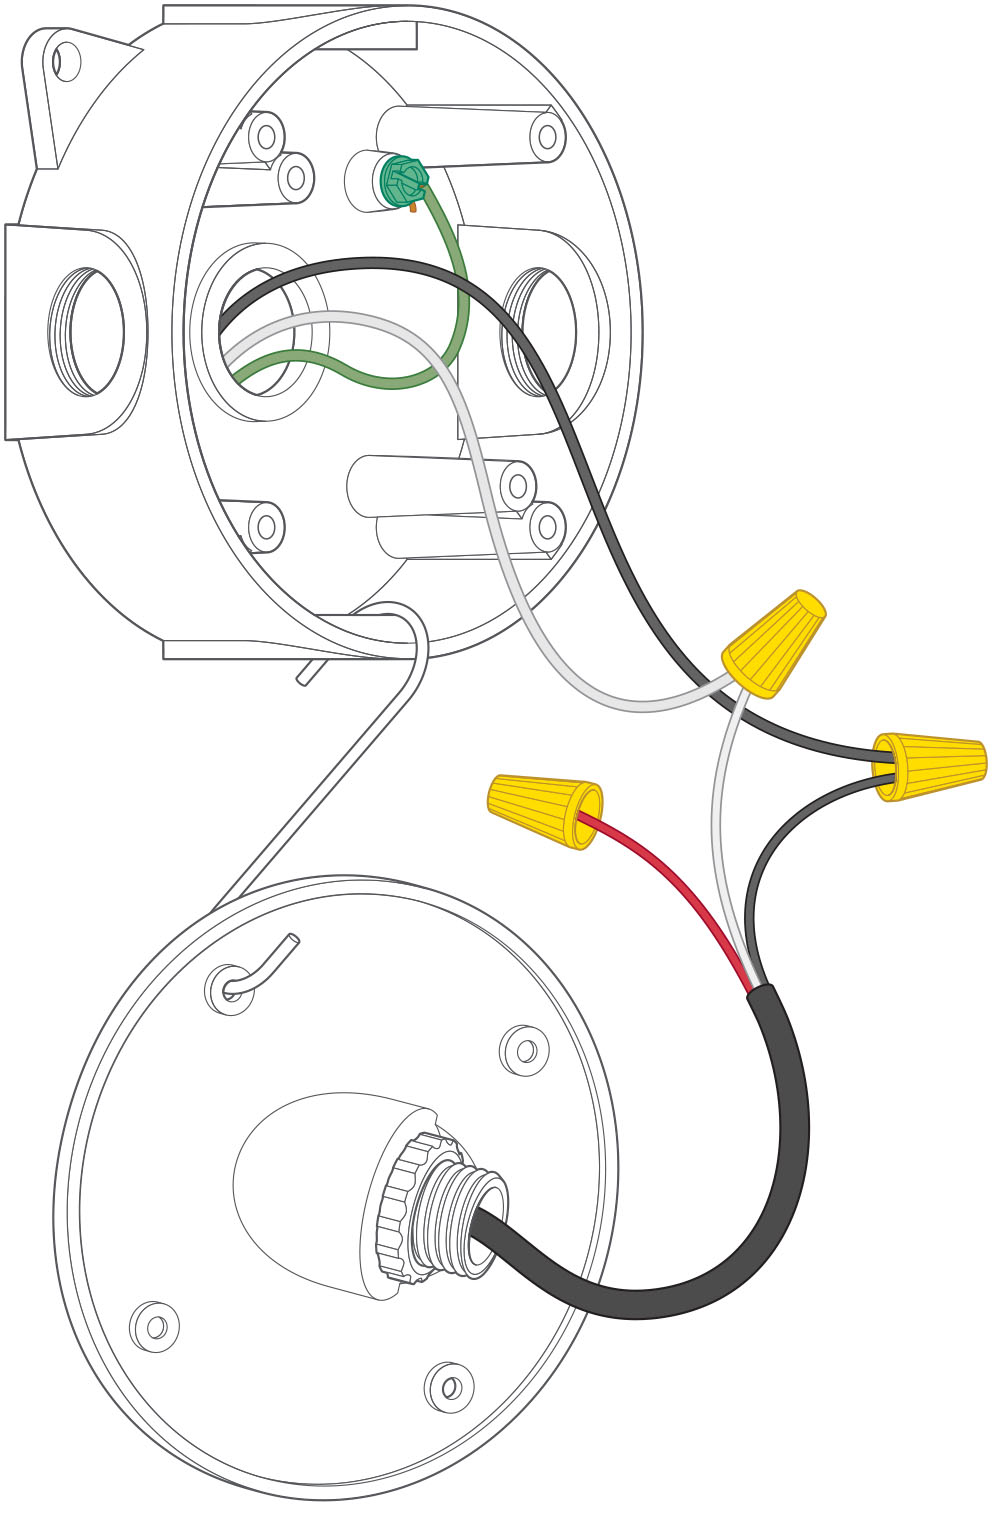 spotlight wiring diagram with switch vauxhall vectra c headlight spot light instructions free for you cam mount installation ring help rh support com universal ignition wire money